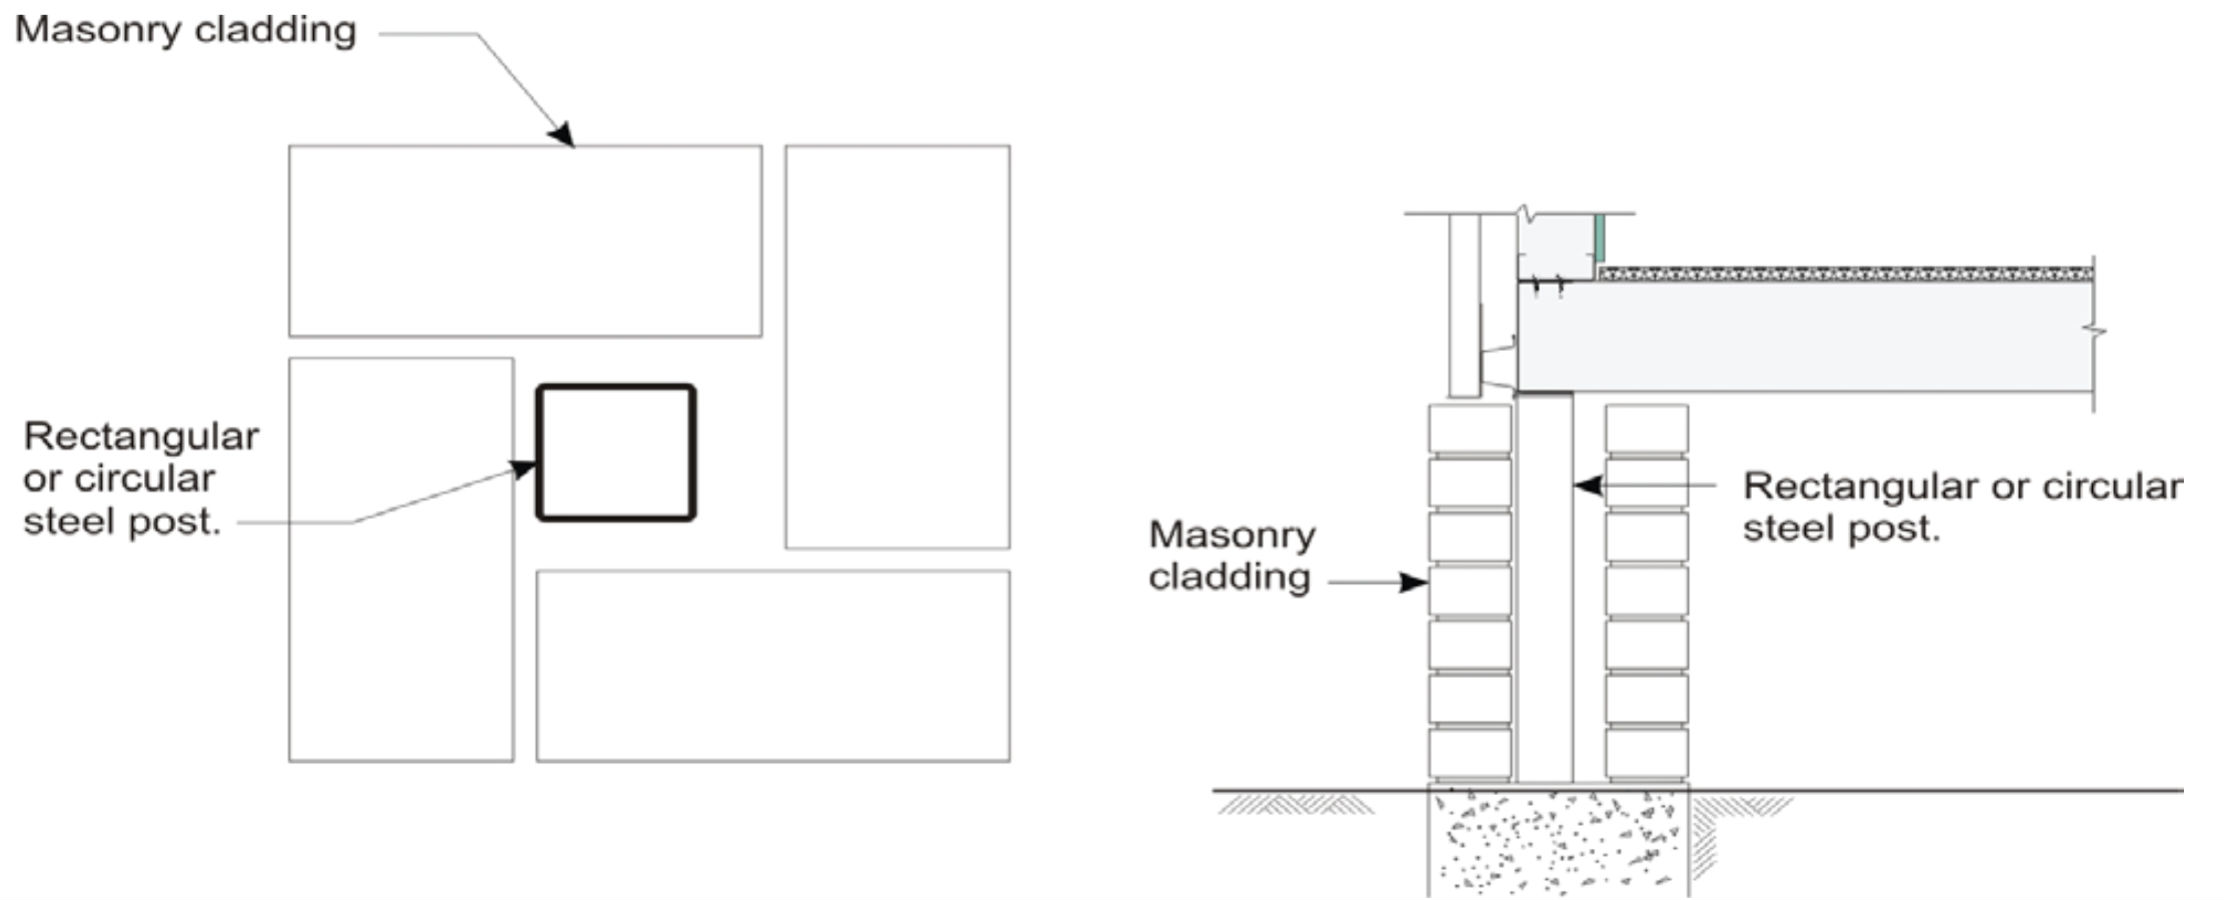 Section view diagram of masonry clad posts under steel bearers and joists floor framing systems